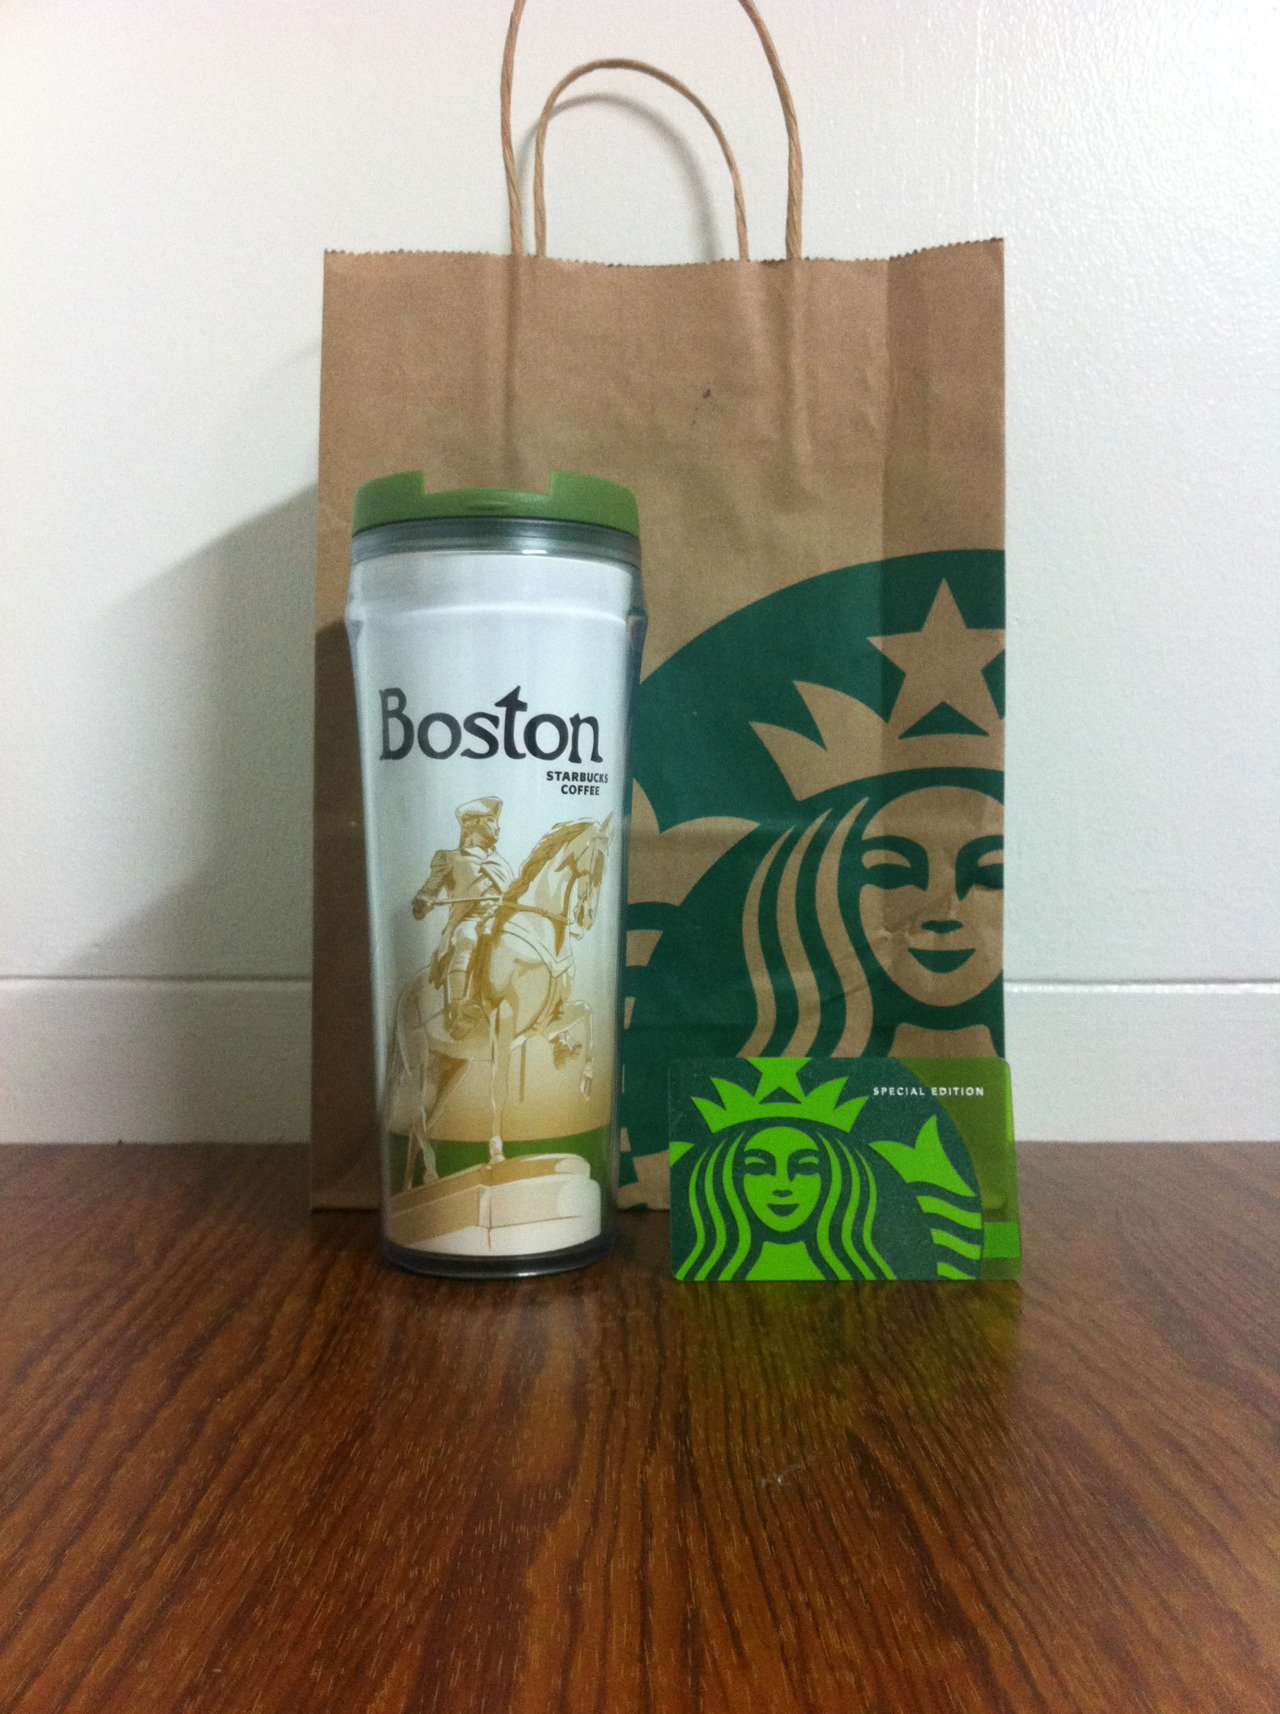 Stuccu: Best Deals on starbucks tumblers for. Up To 70% offCompare Prices· Special Discounts· Lowest Prices· Up to 70% off.